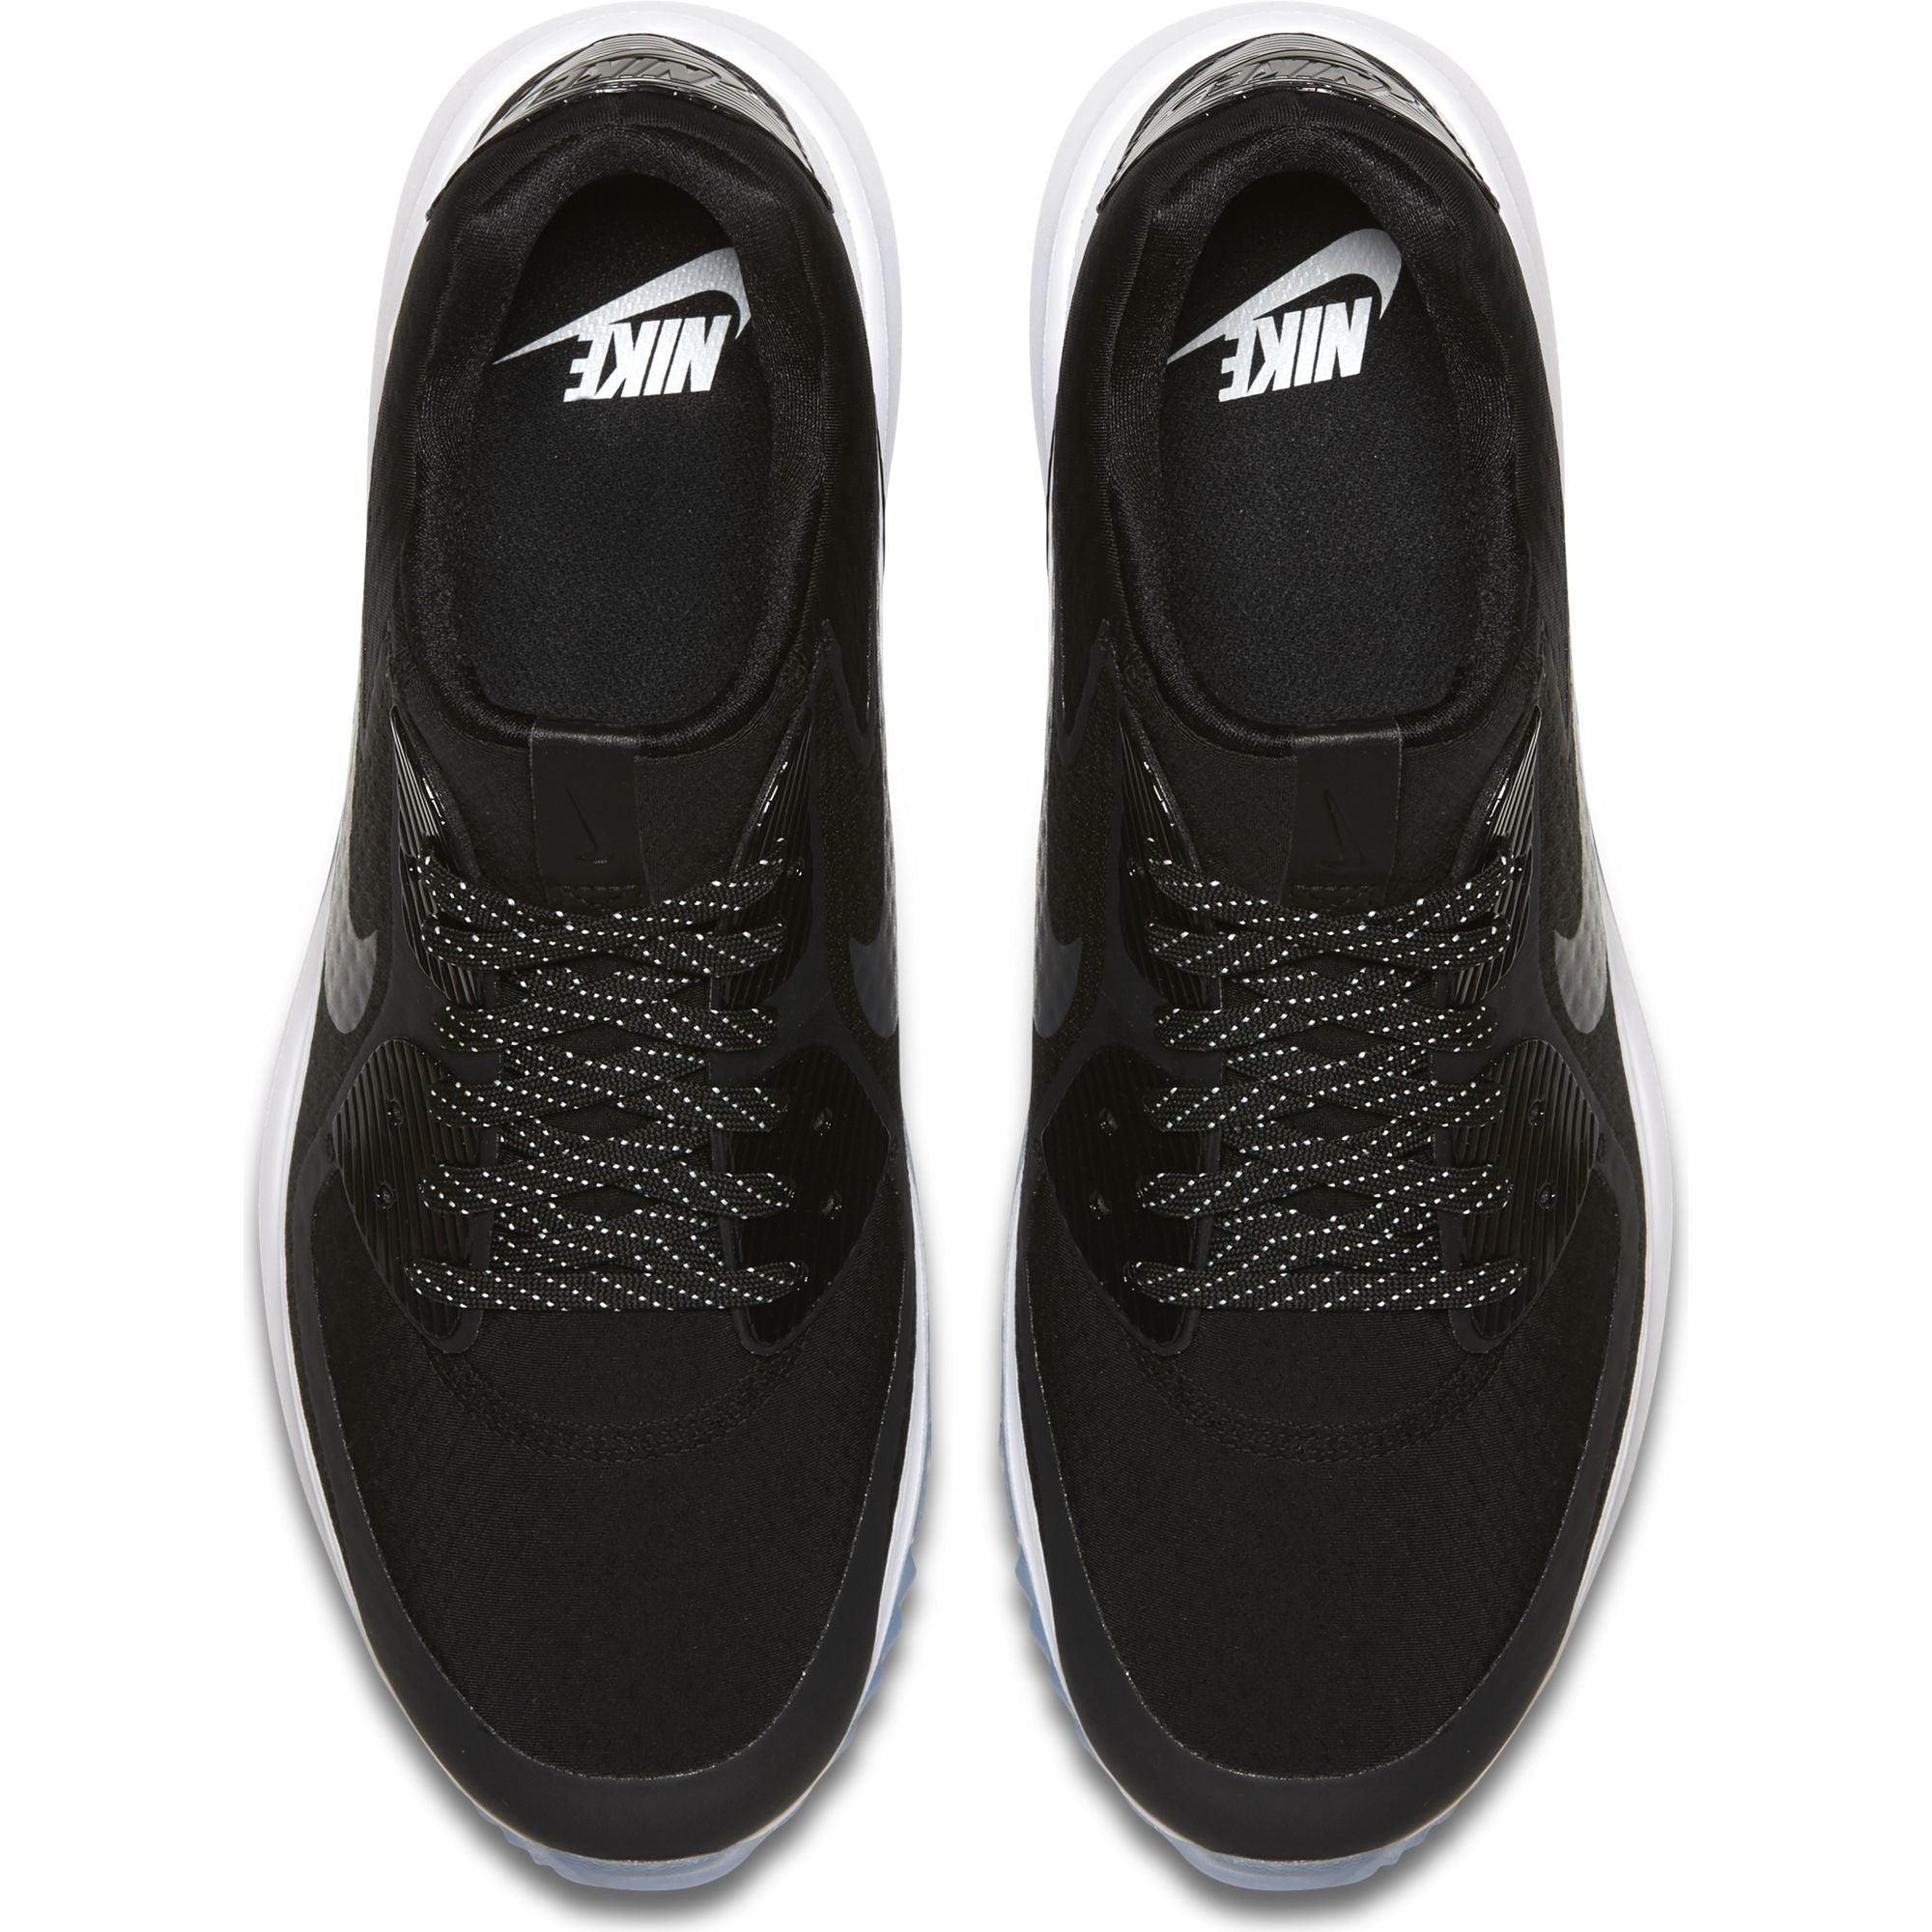 aaebd108a2d Men s - NIKE Air Zoom 90 IT - Black Anthracite-White-Volt – Just ...